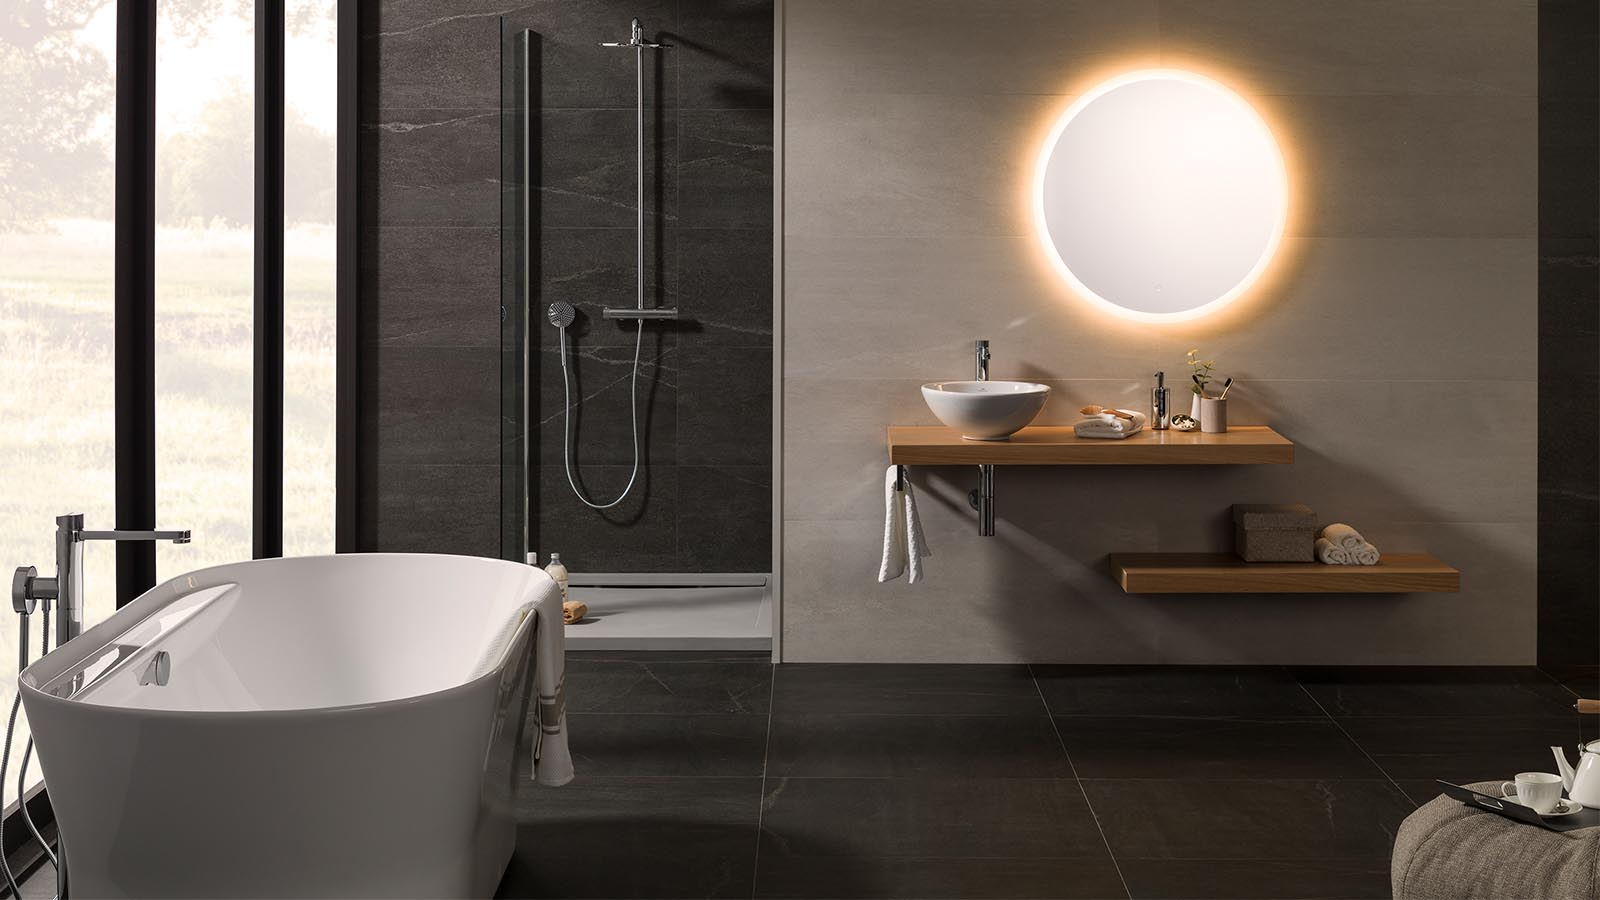 Tips for choosing and installing LED bathroom mirrors